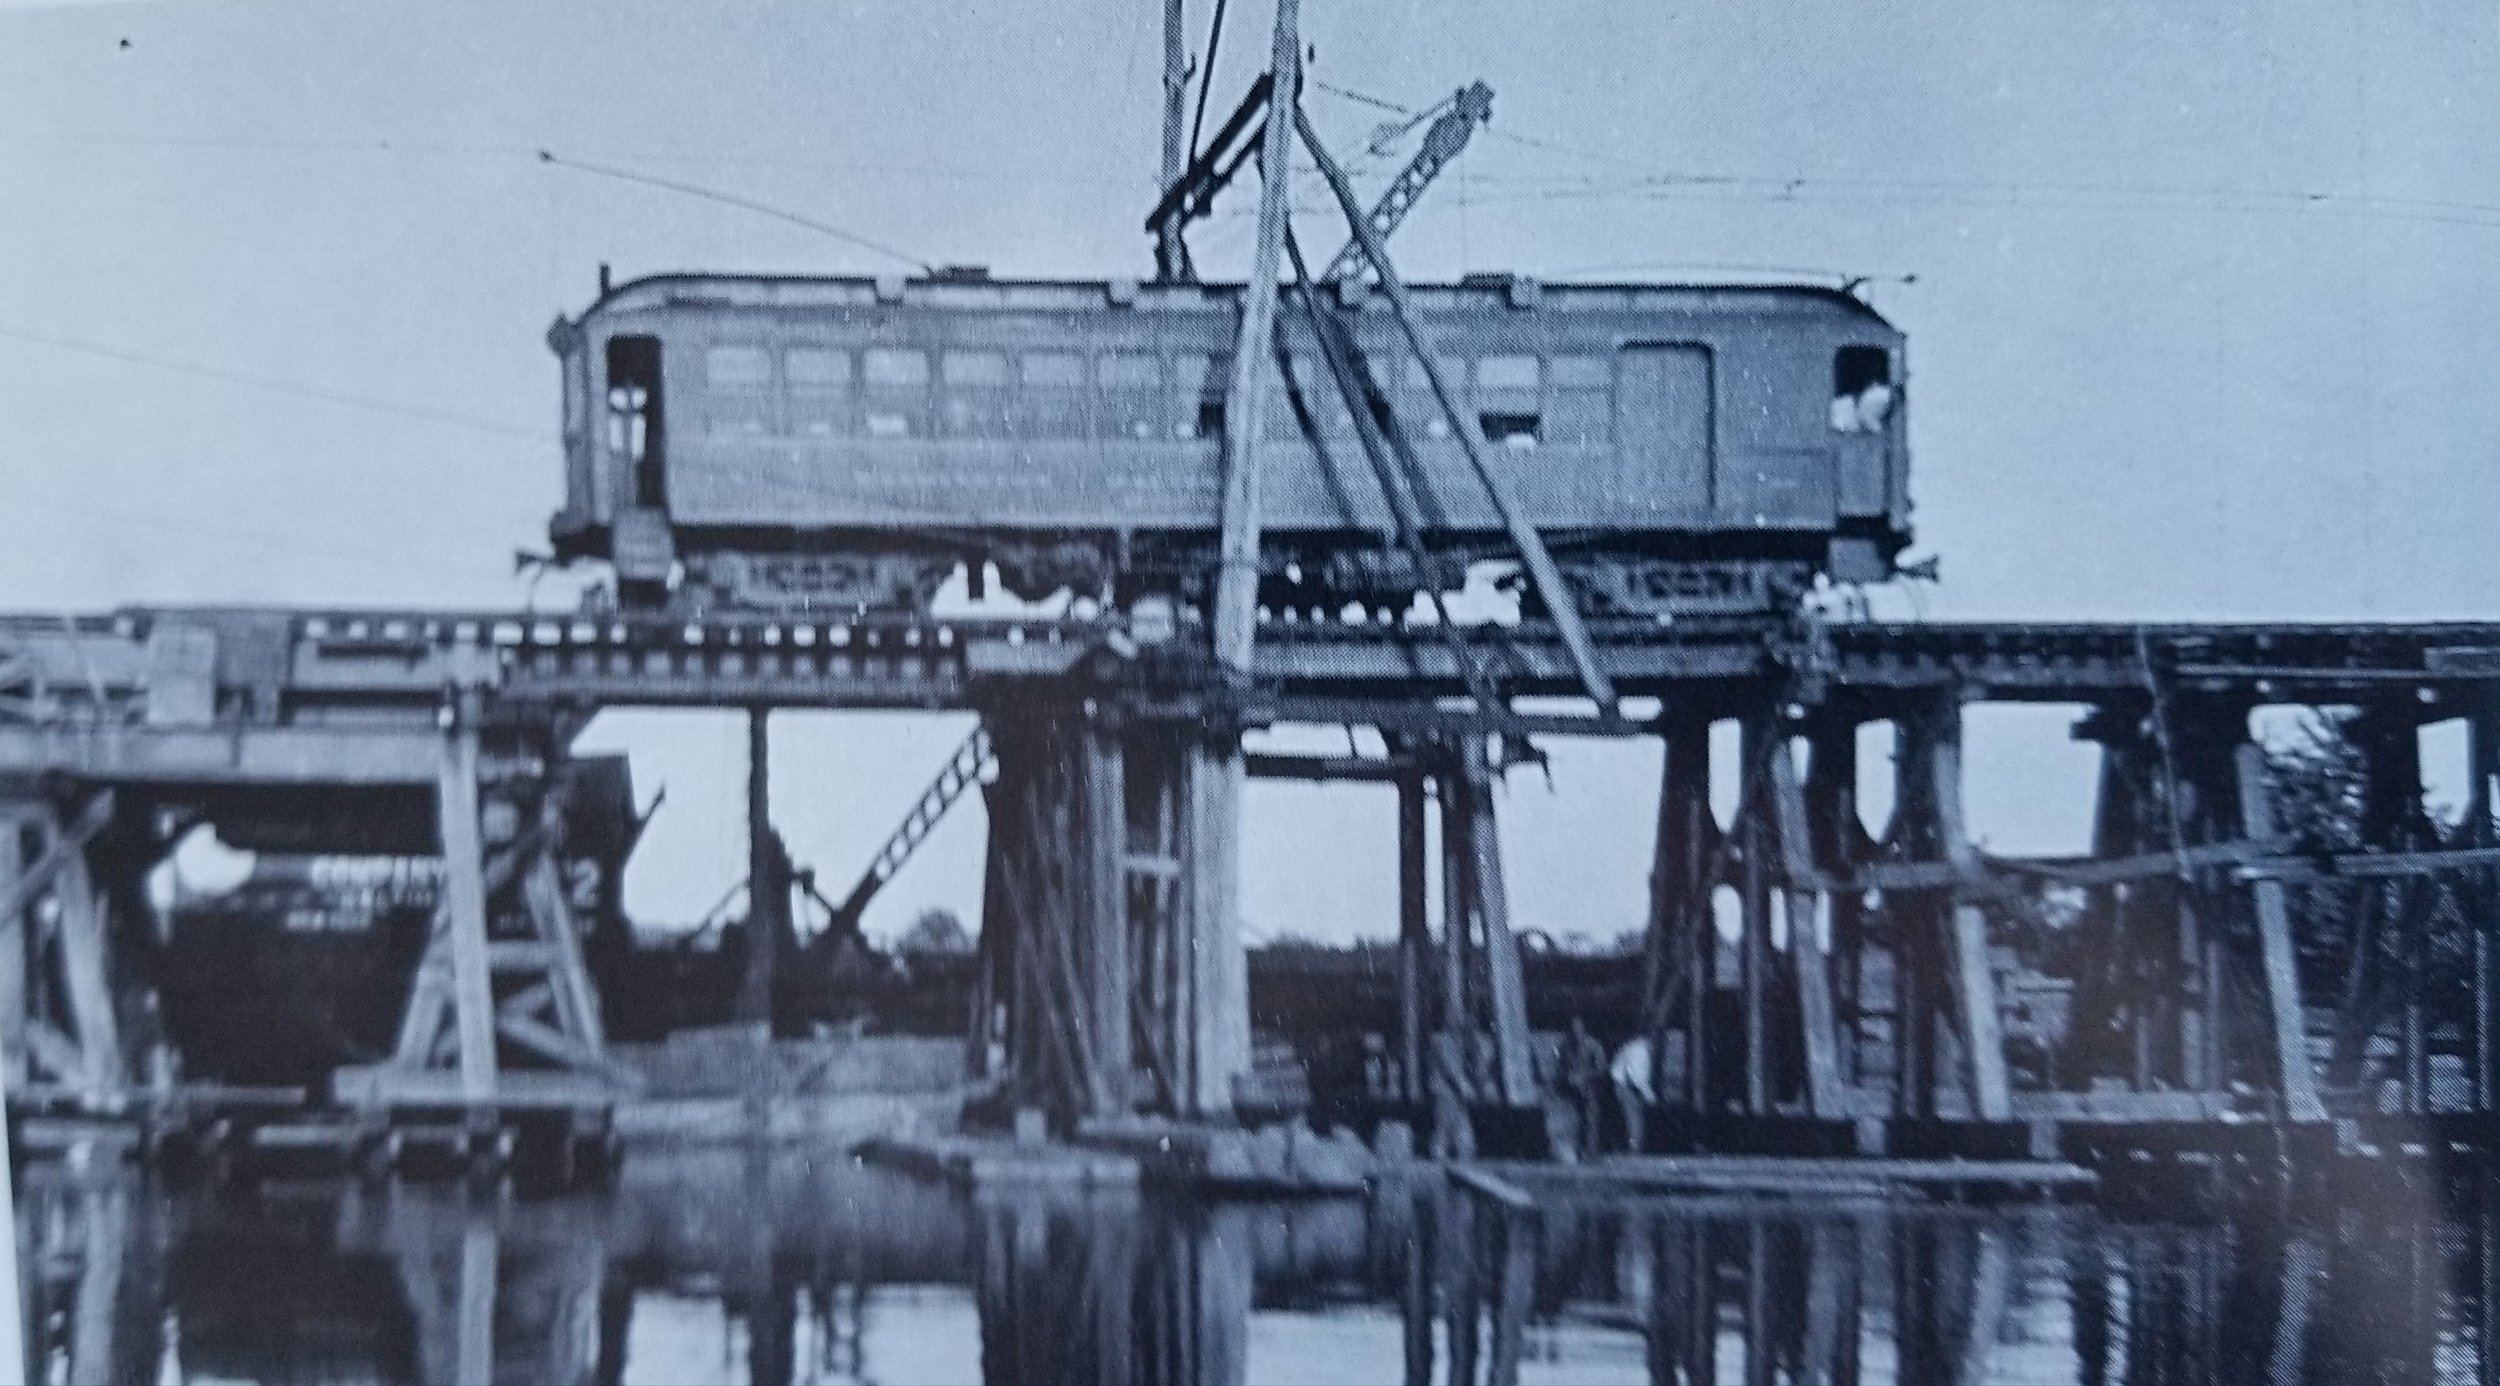 Baltimore & Annapolis Car #86 crossing College Creek as it enters Bladen Street Station in Annapolis. Annapolis, Maryland Date: Unknown. Source: John E. Merriken Collection.